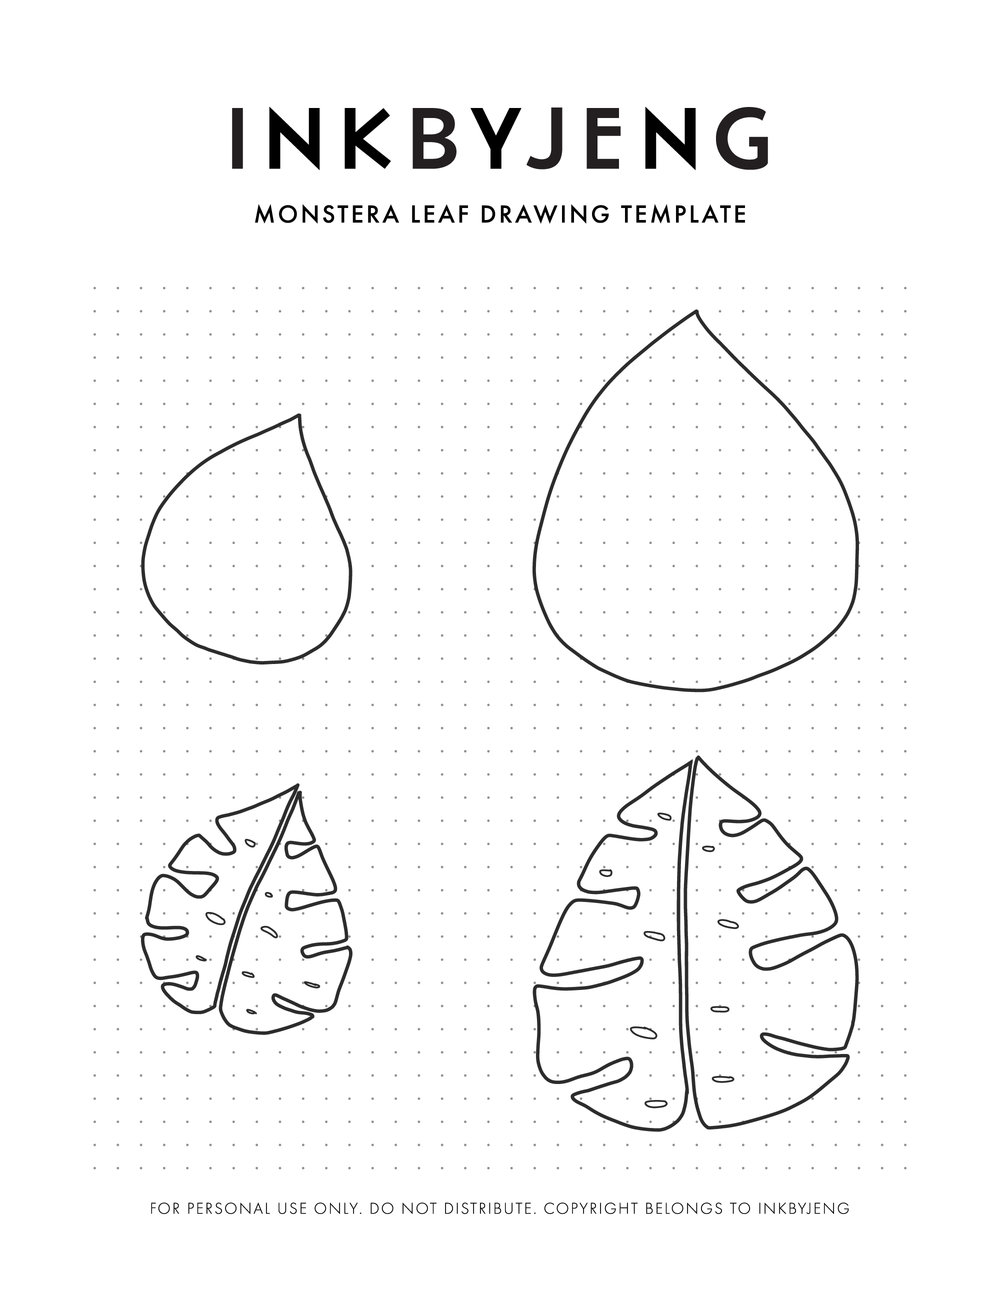 How to draw monstera leaf inkbyjeng for Drawing websites that you can draw on